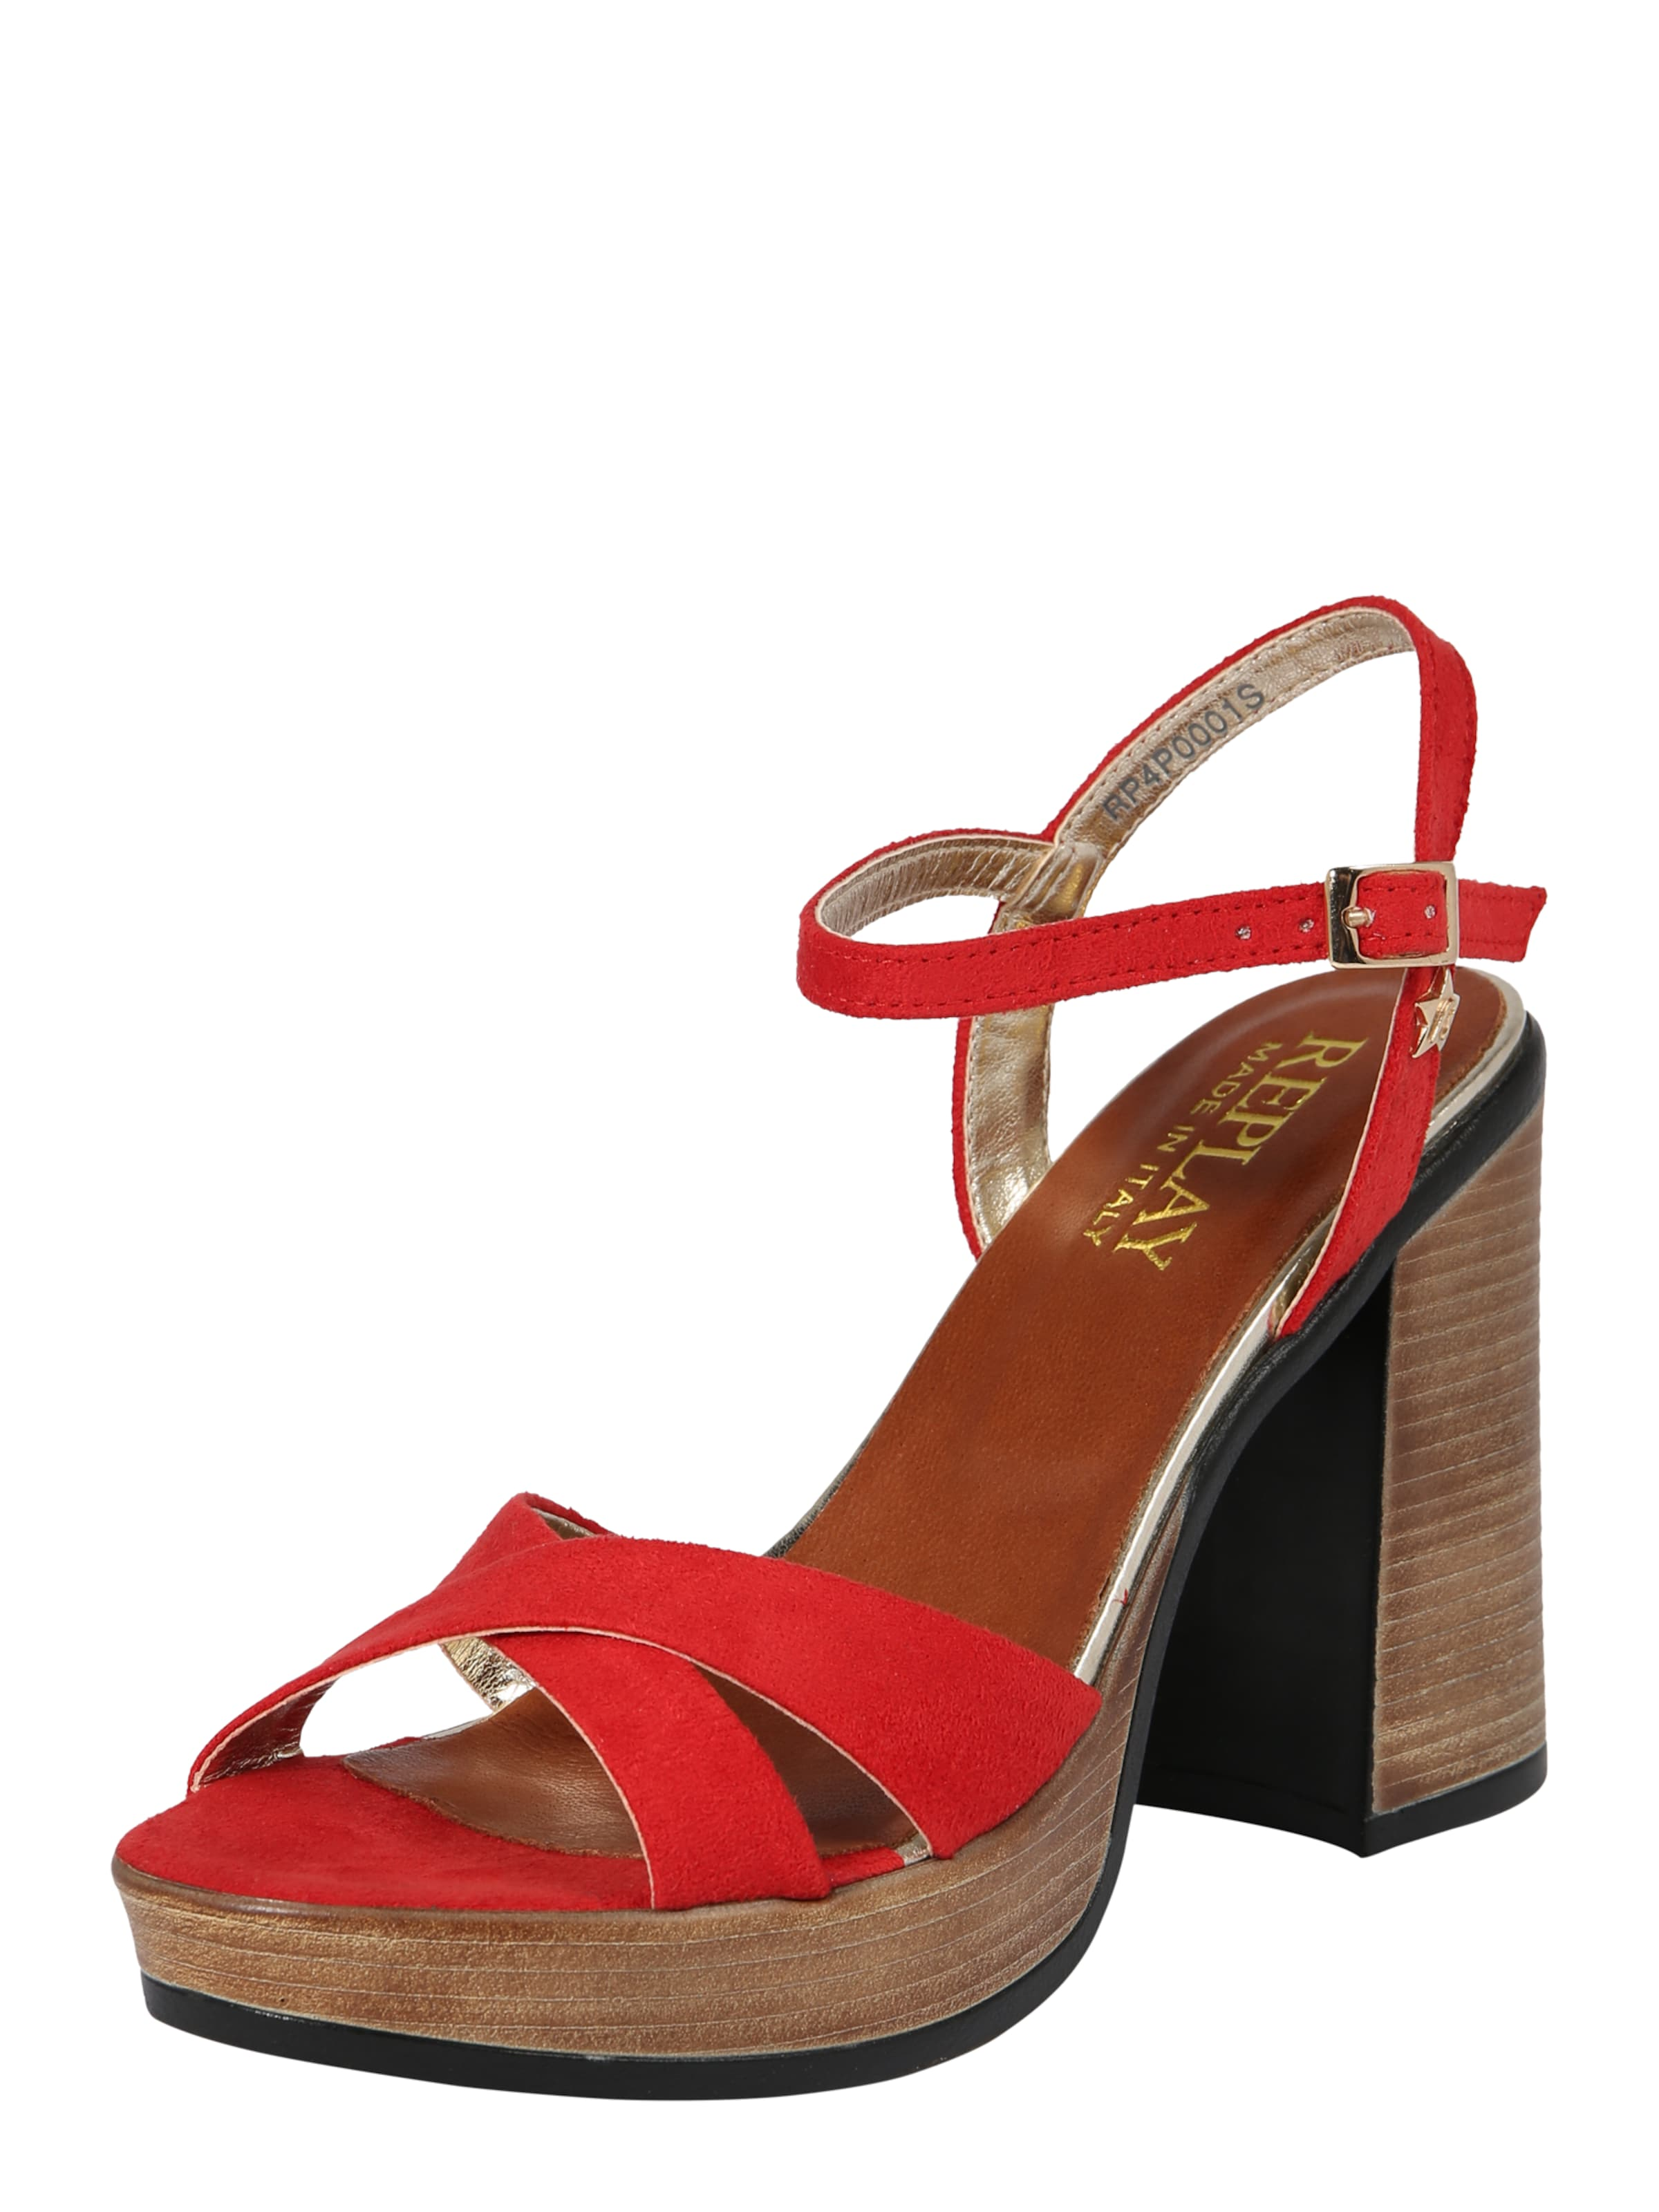 REPLAY Sandalette 'Dessin' in rot